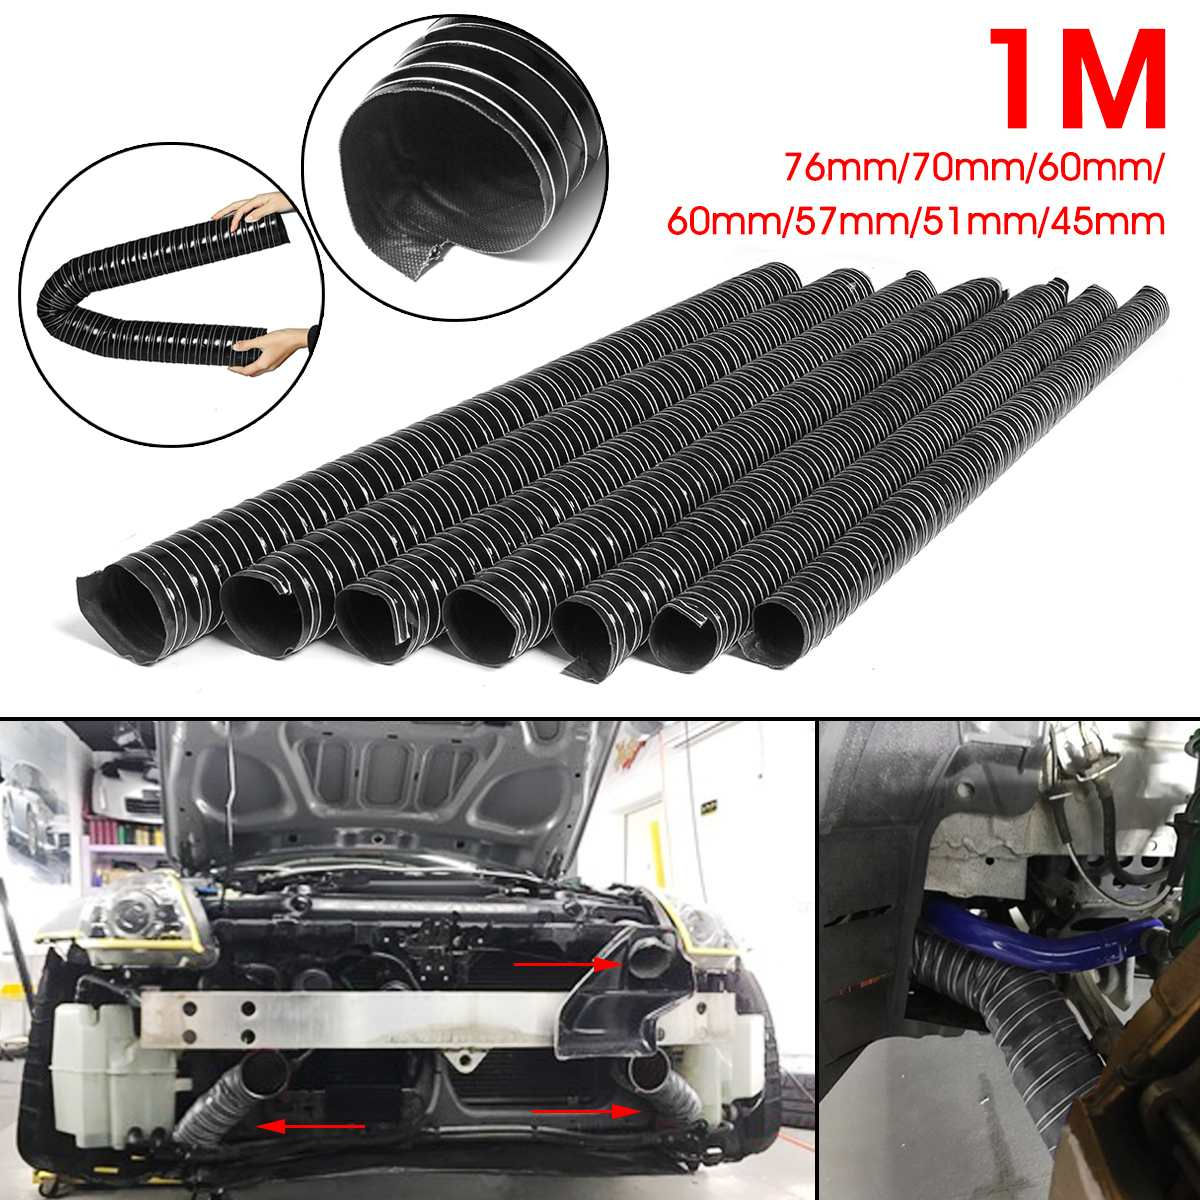 Car Hood Air Intake Pipe 1m Air Ducting Hose Tube 76/70/63/60/57/51/45mm Flexible Filter Pipe Universal